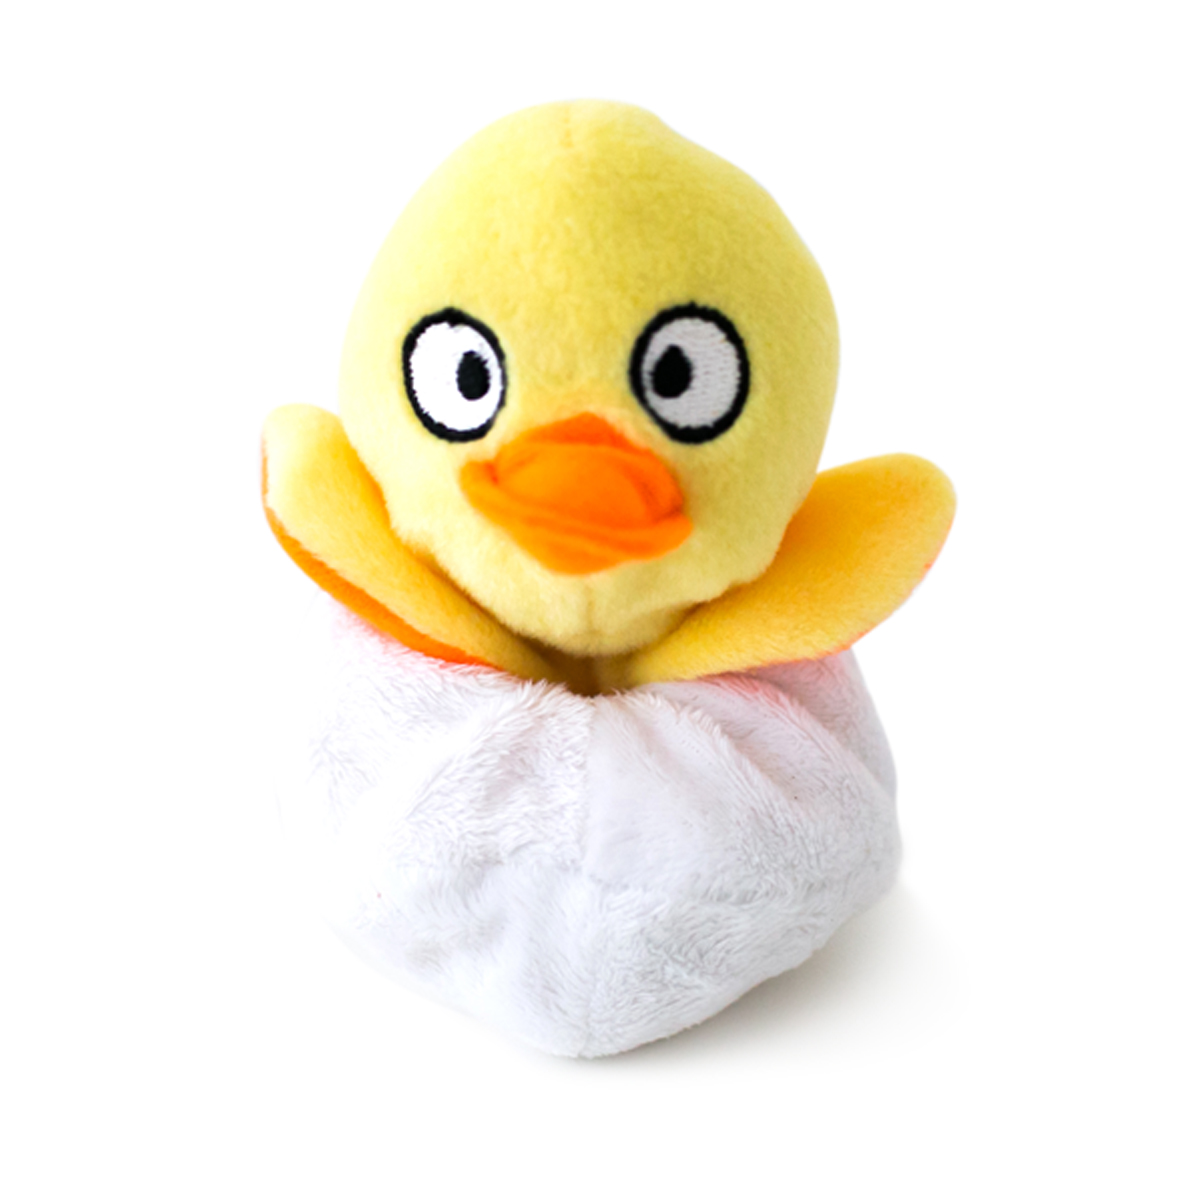 Hatchables Dog Toy - Yellow Duck